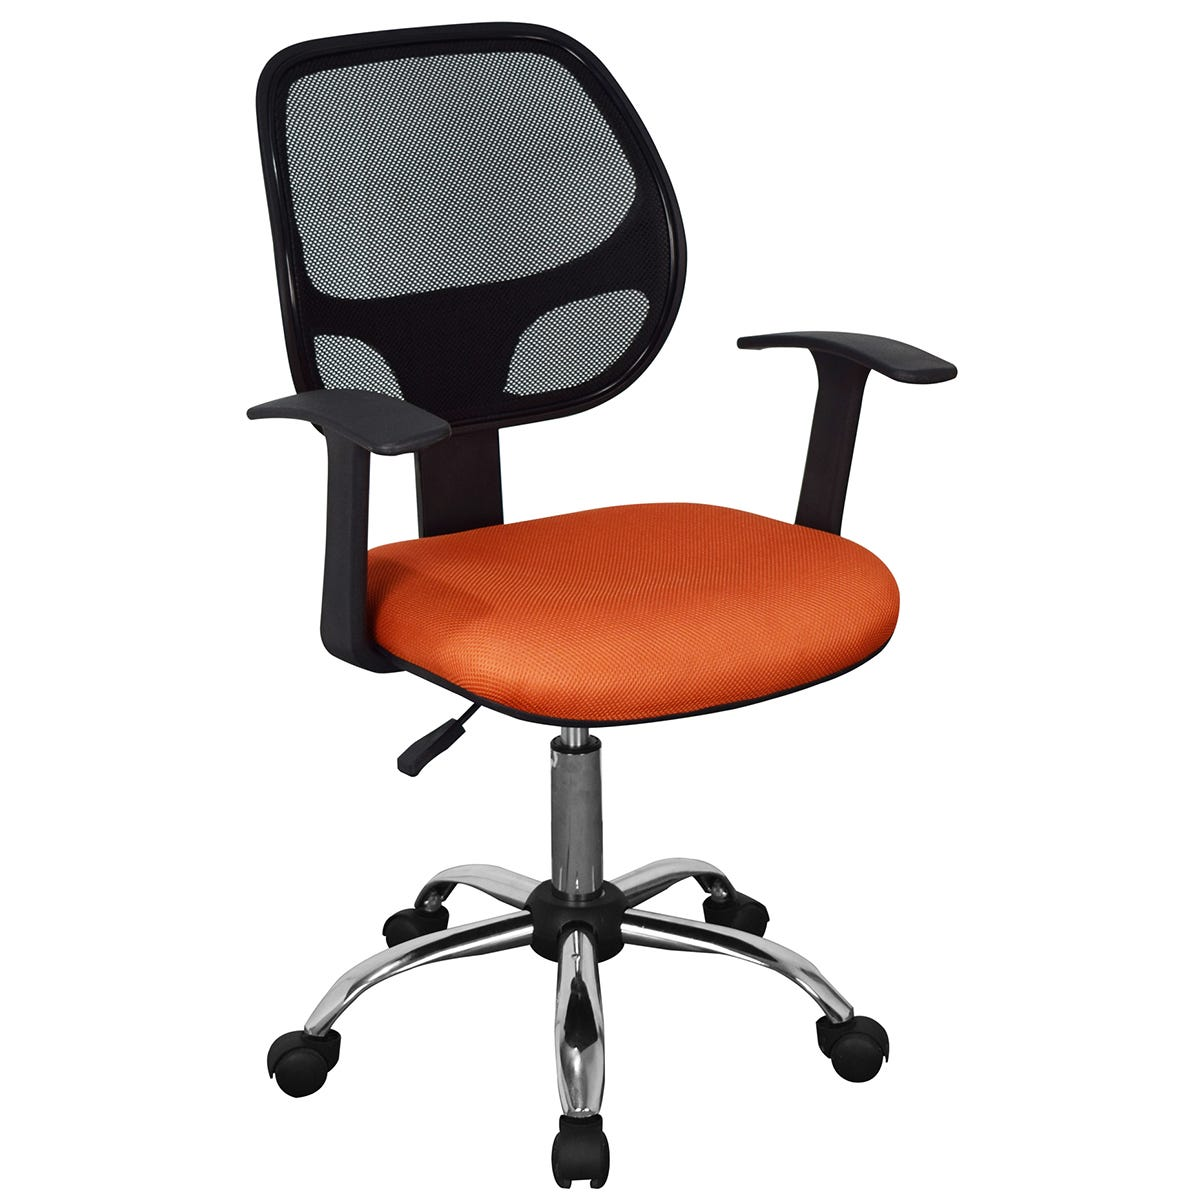 Core Products Loft Home Office Home Office Fabric Chair with Mesh Back & Chrome Base - Orange/Black